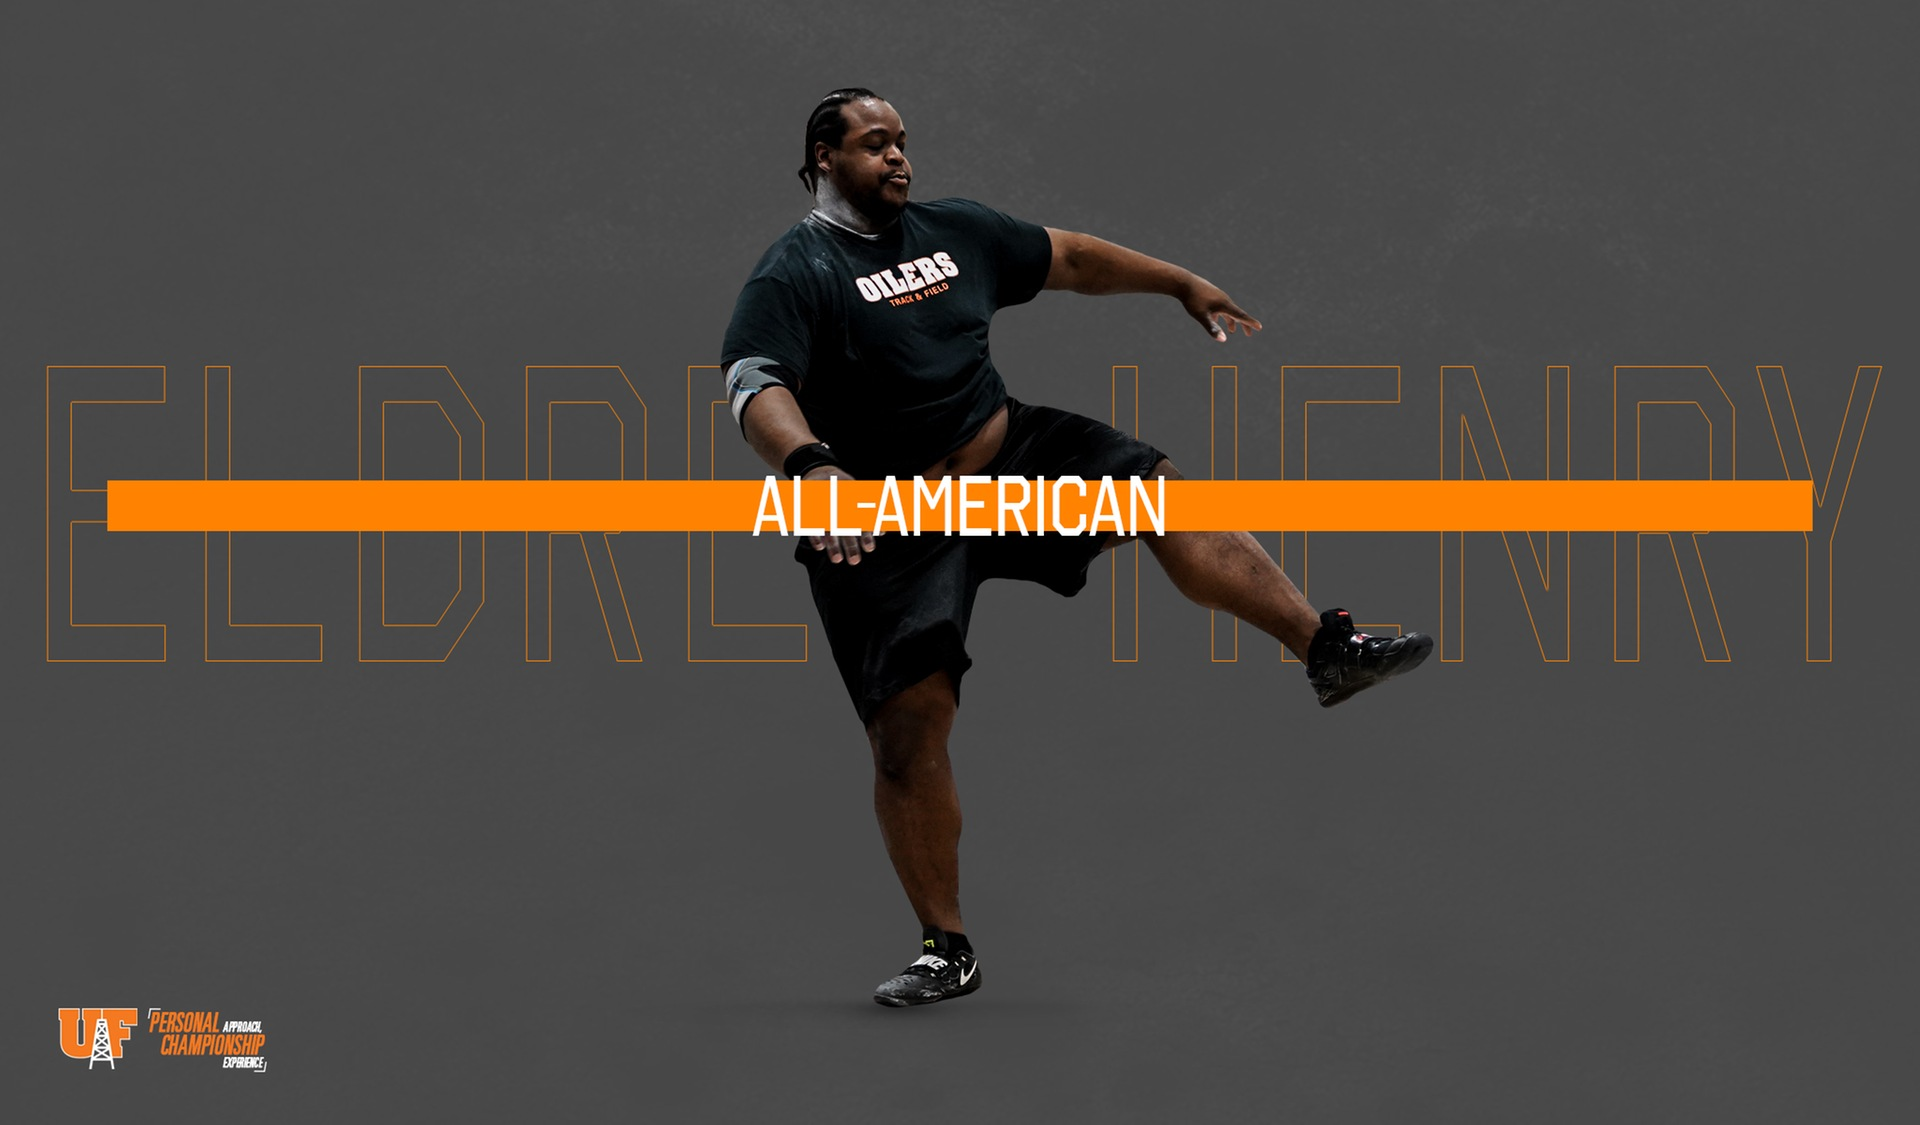 Henry Earns All-American Honors in Discus